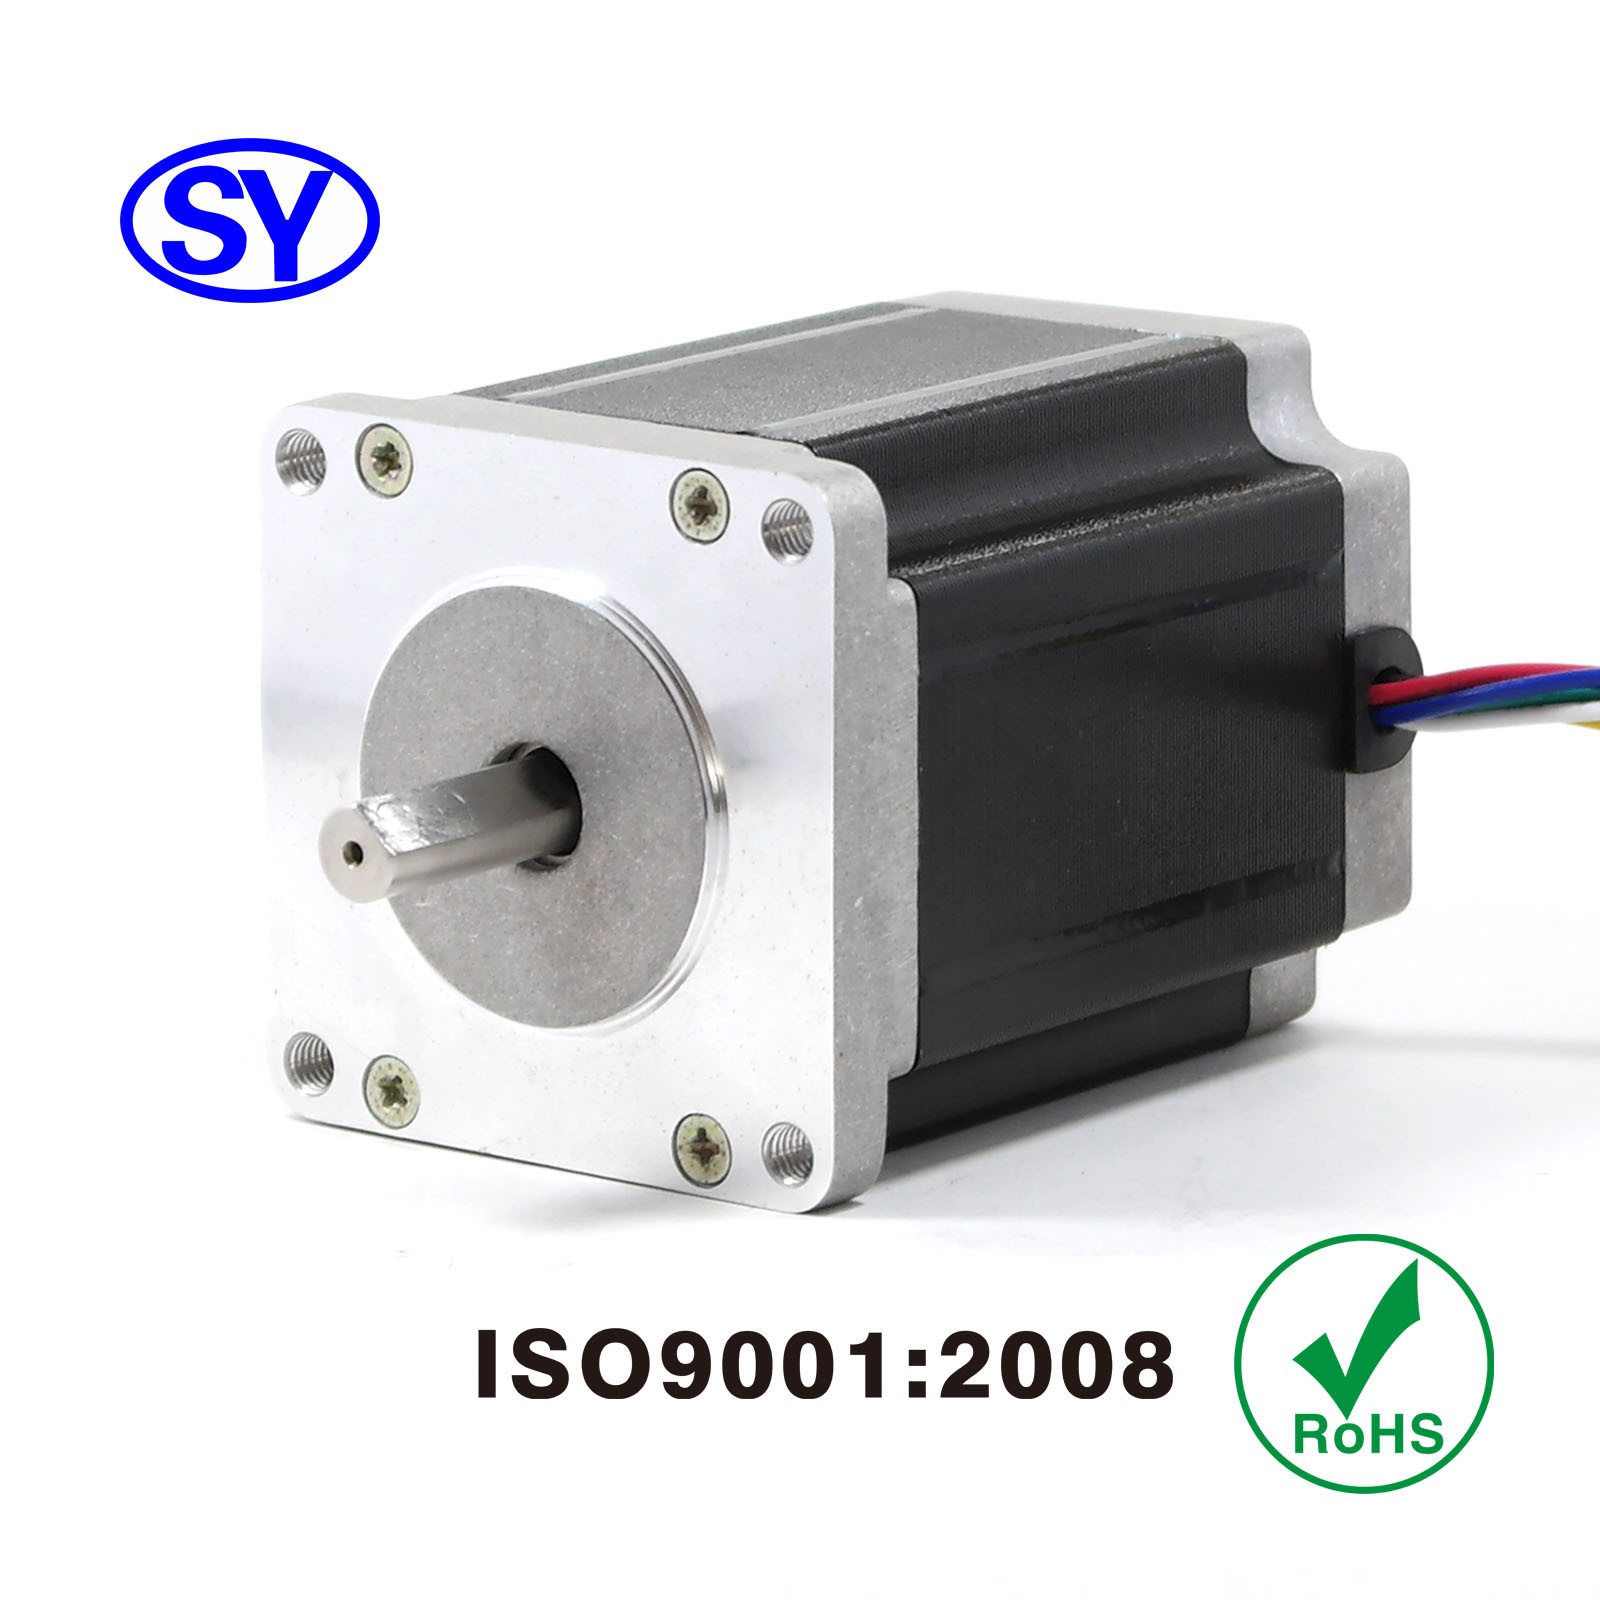 60mm Stepper Electrical Motor for 3D Printer, CNC Machine